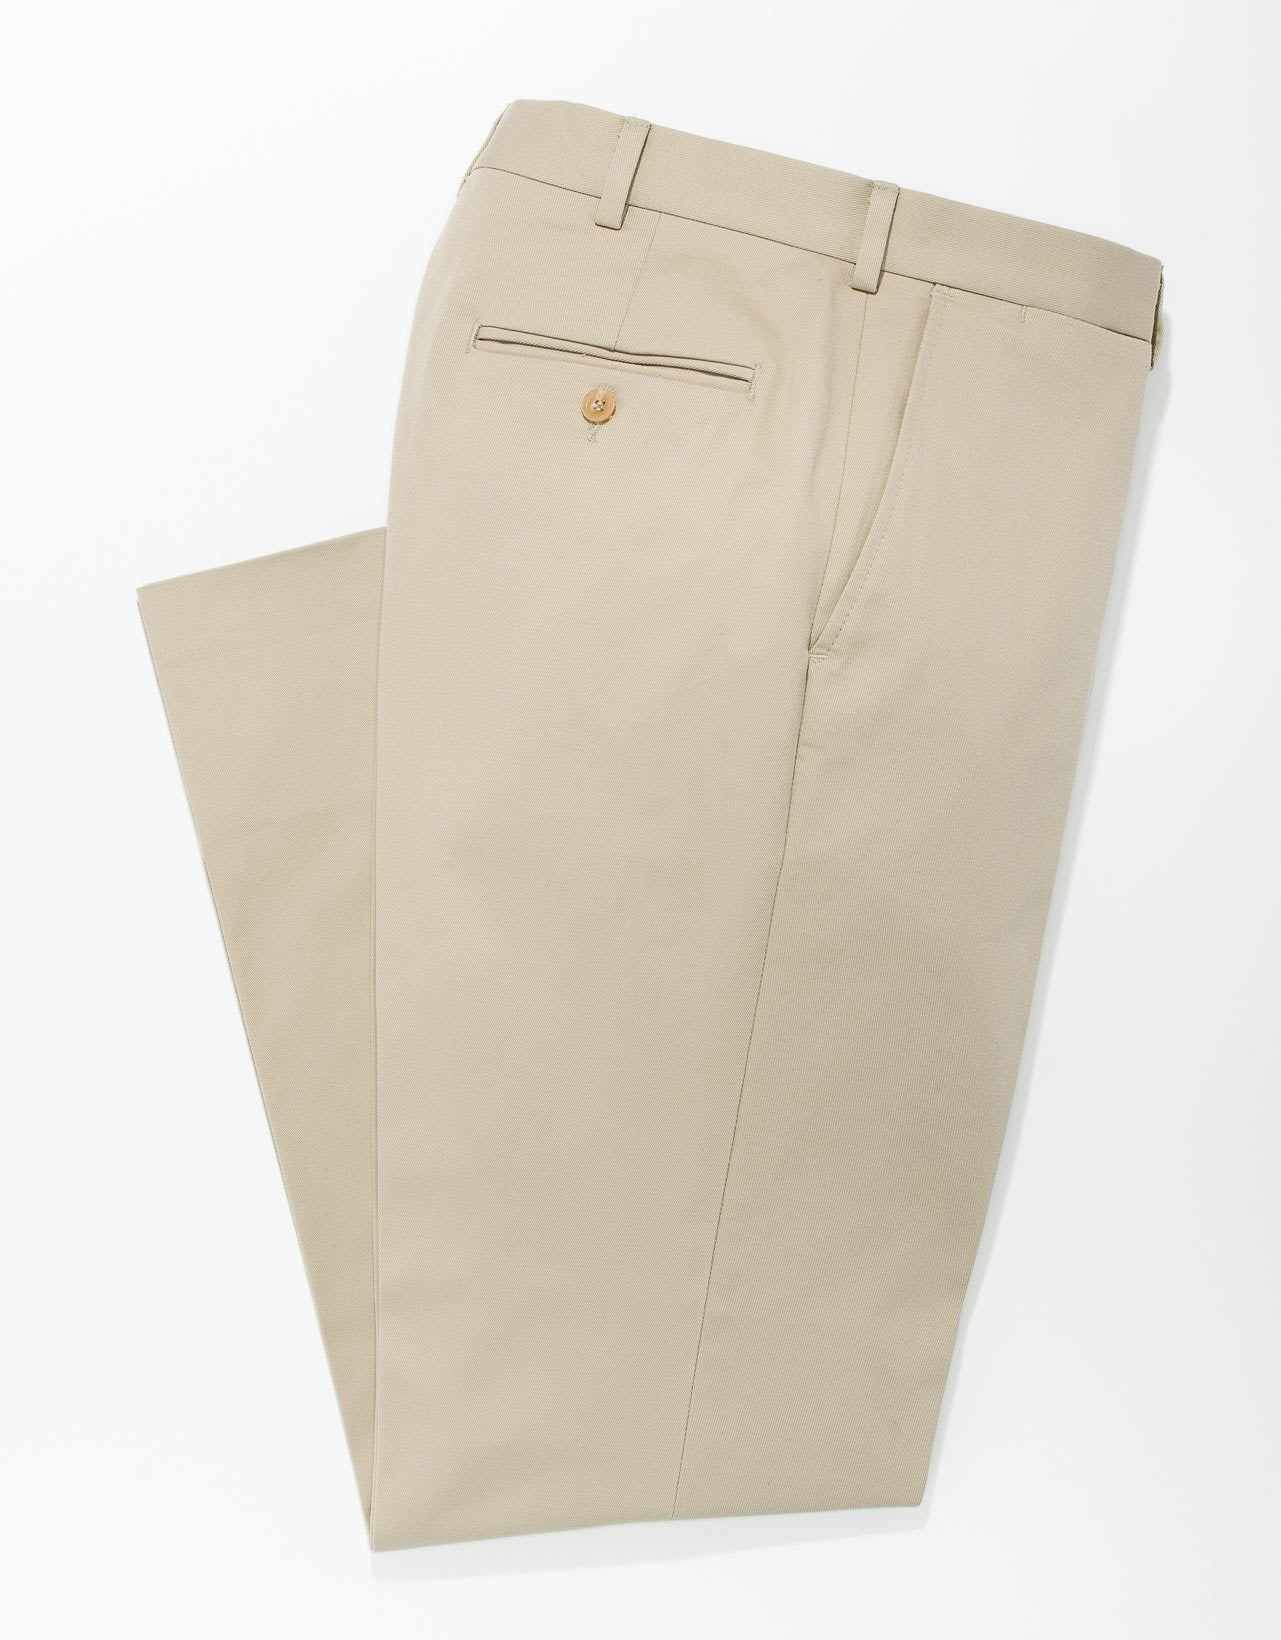 KHAKI UNWASHED COTTON CHINO- TRIM FIT